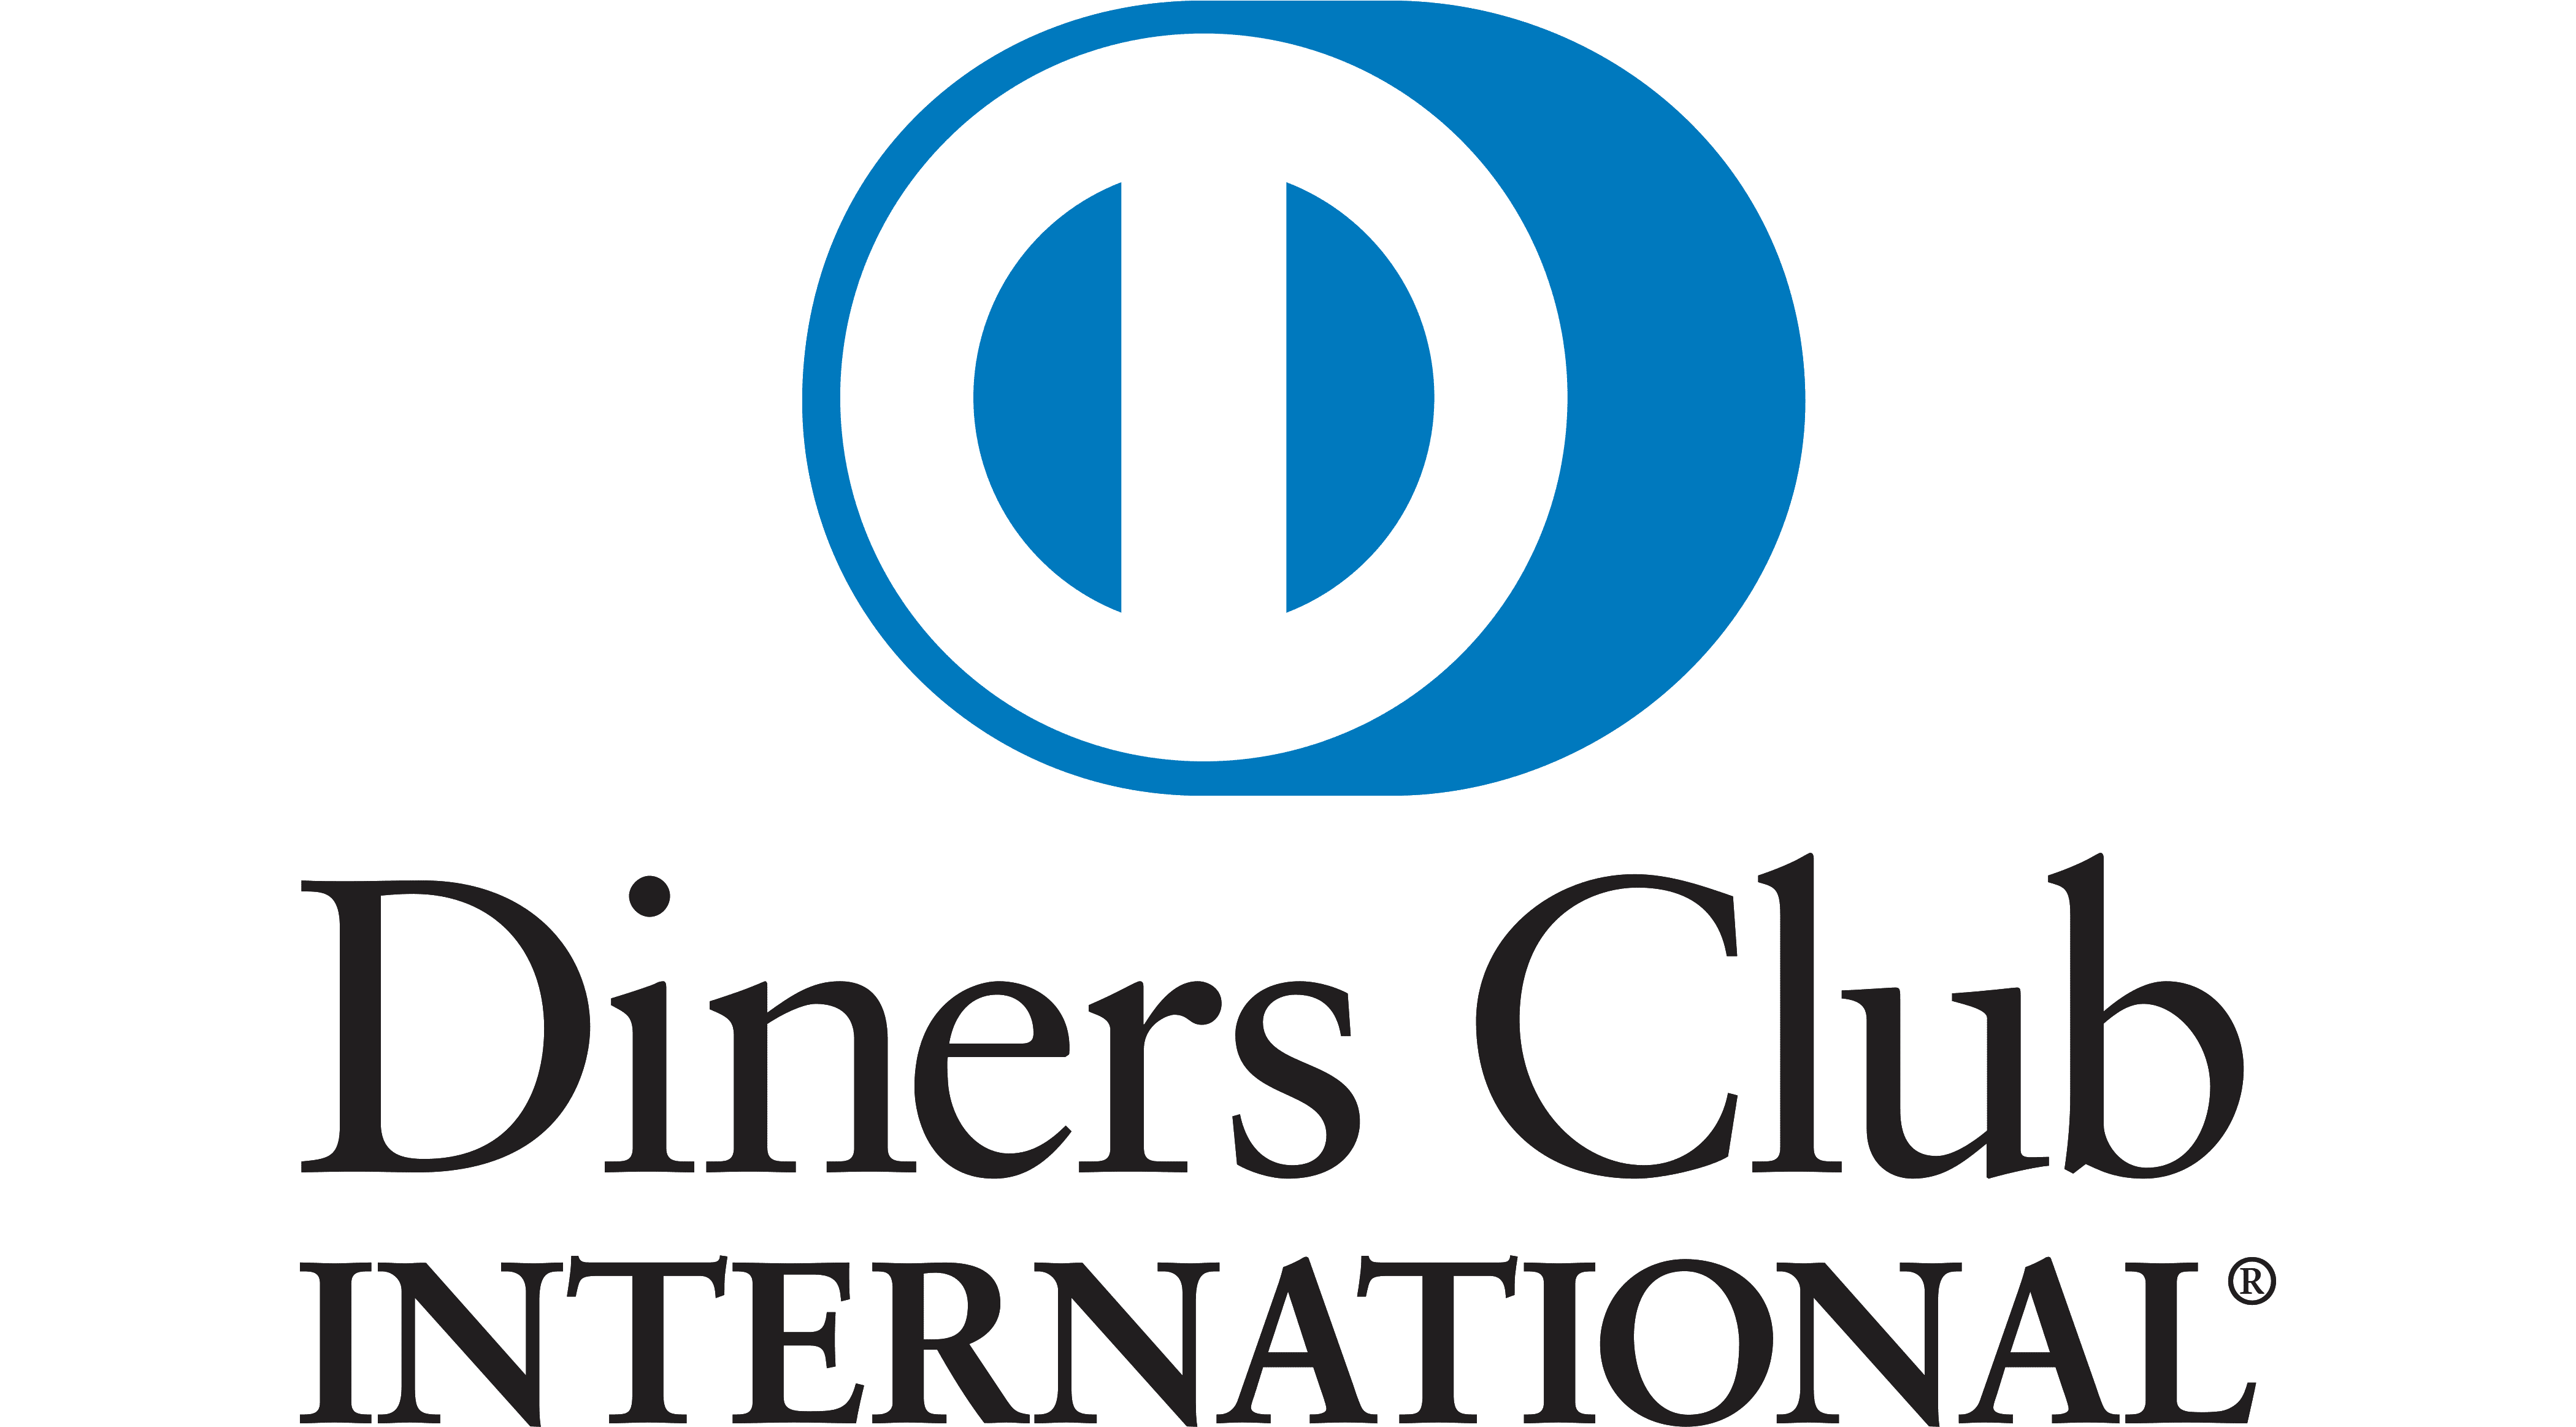 Diners Club International Logo | evolution history and meaning, PNG